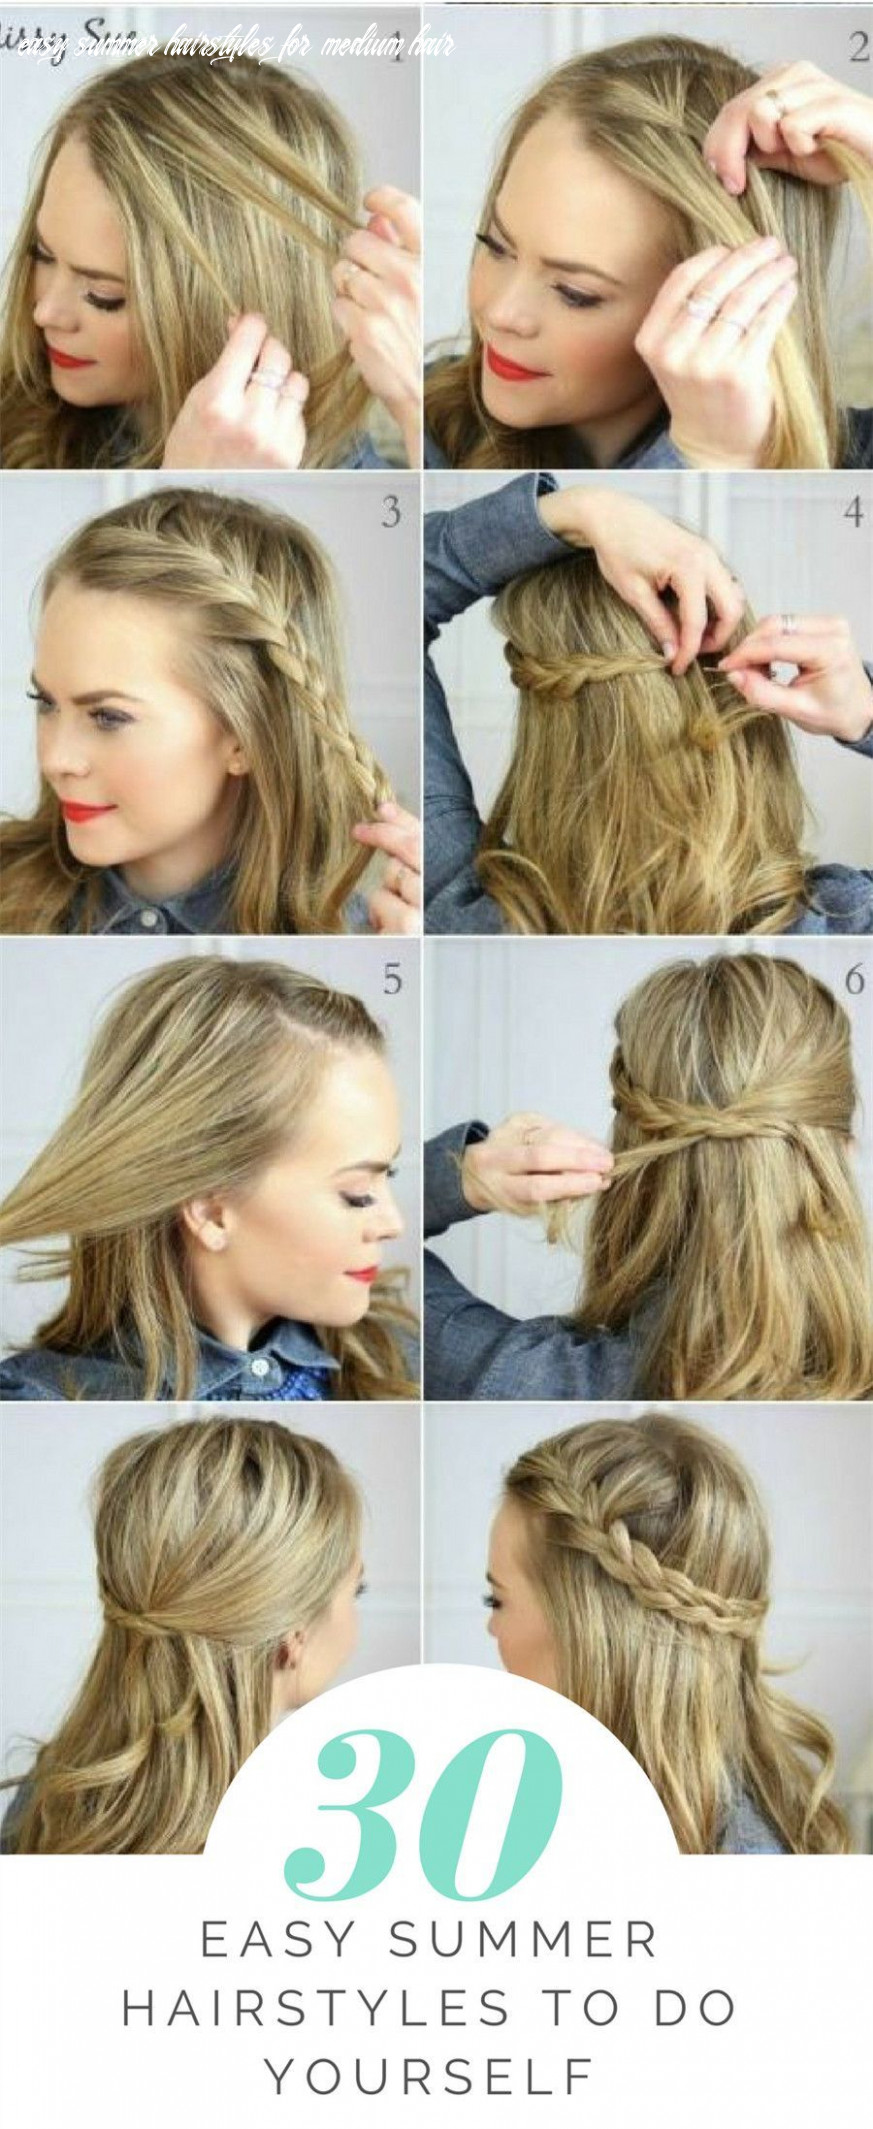 Best hairstyle of 8 | cute everyday hairstyles, easy hairstyles